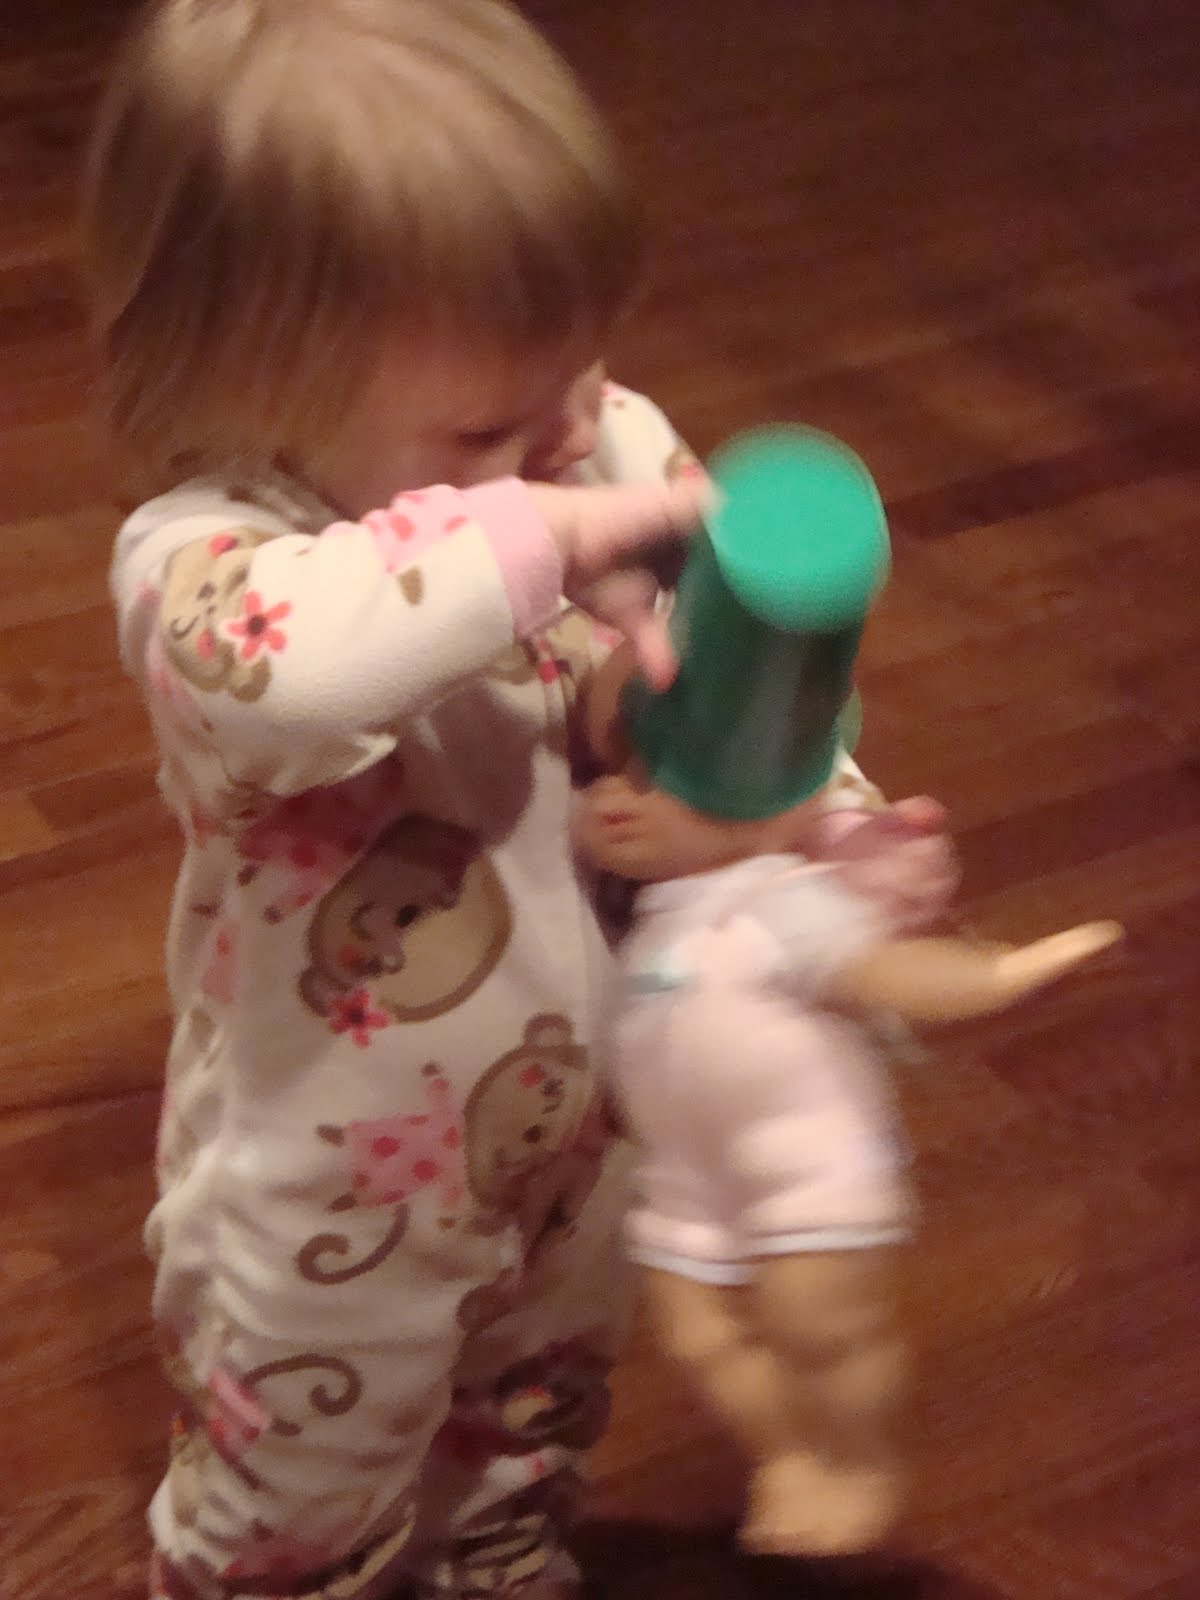 Mommy pushes her favorite toy inside